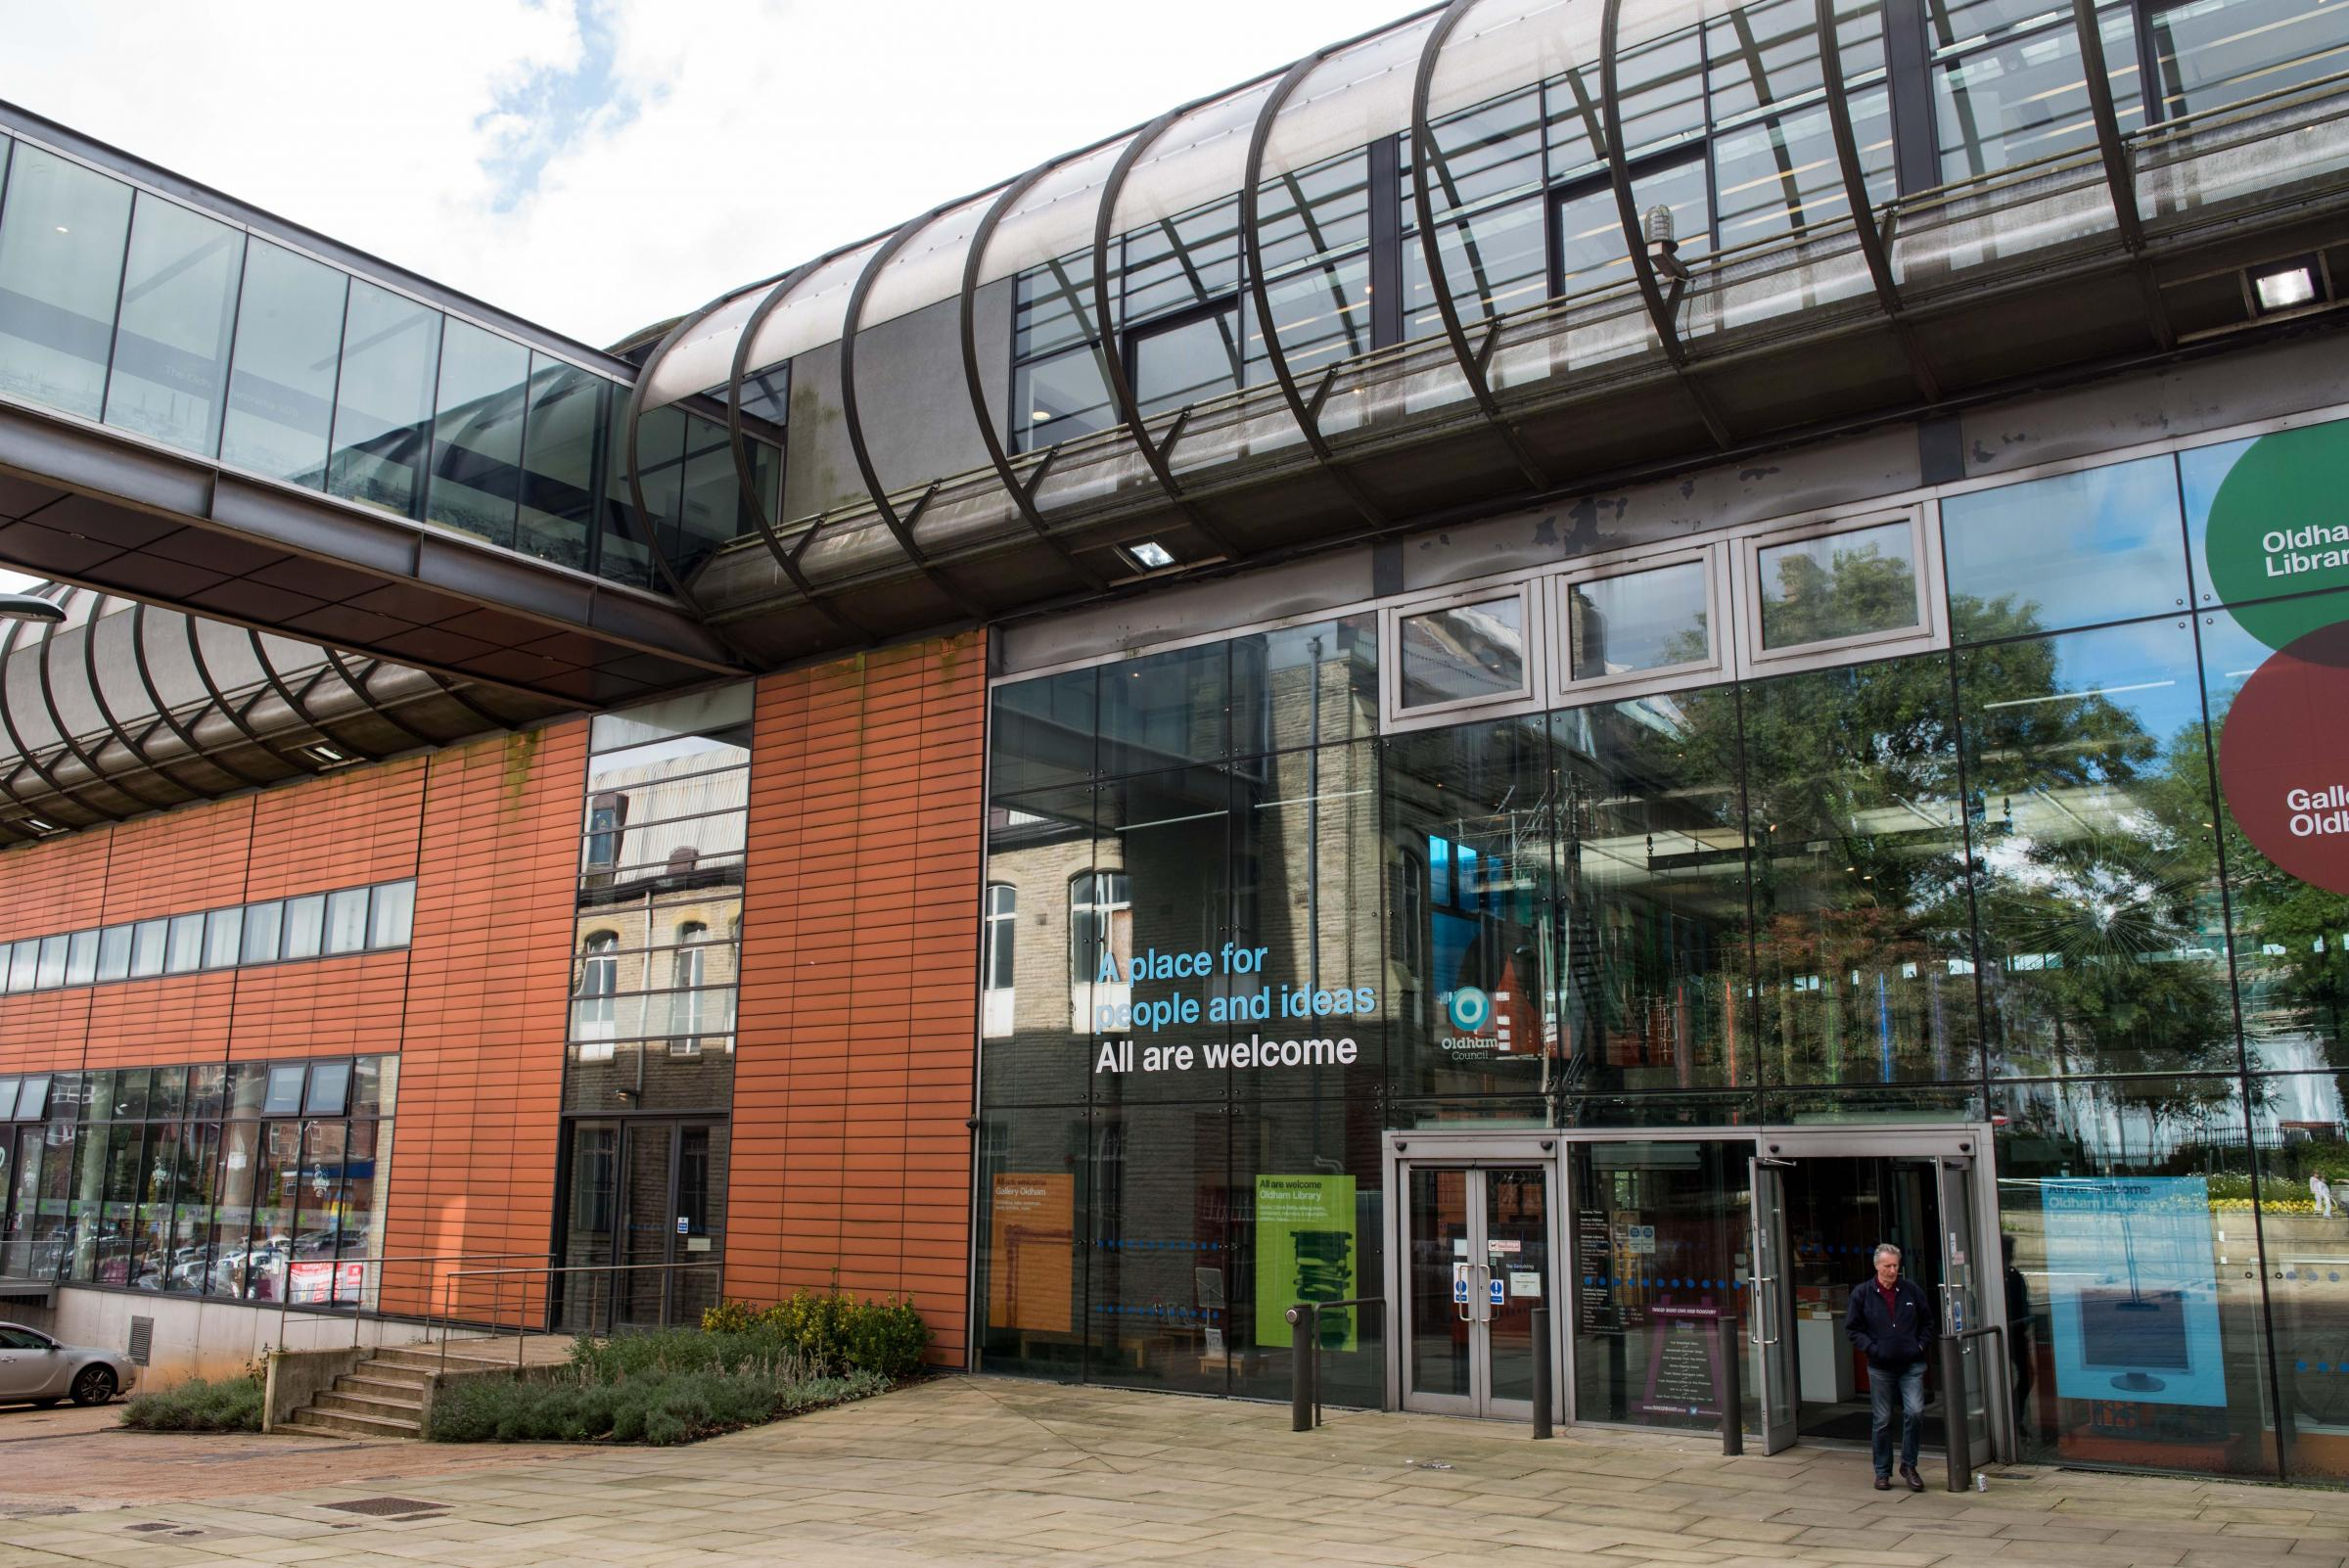 Gallery Oldham and Oldham Library which will host International Women's Day events